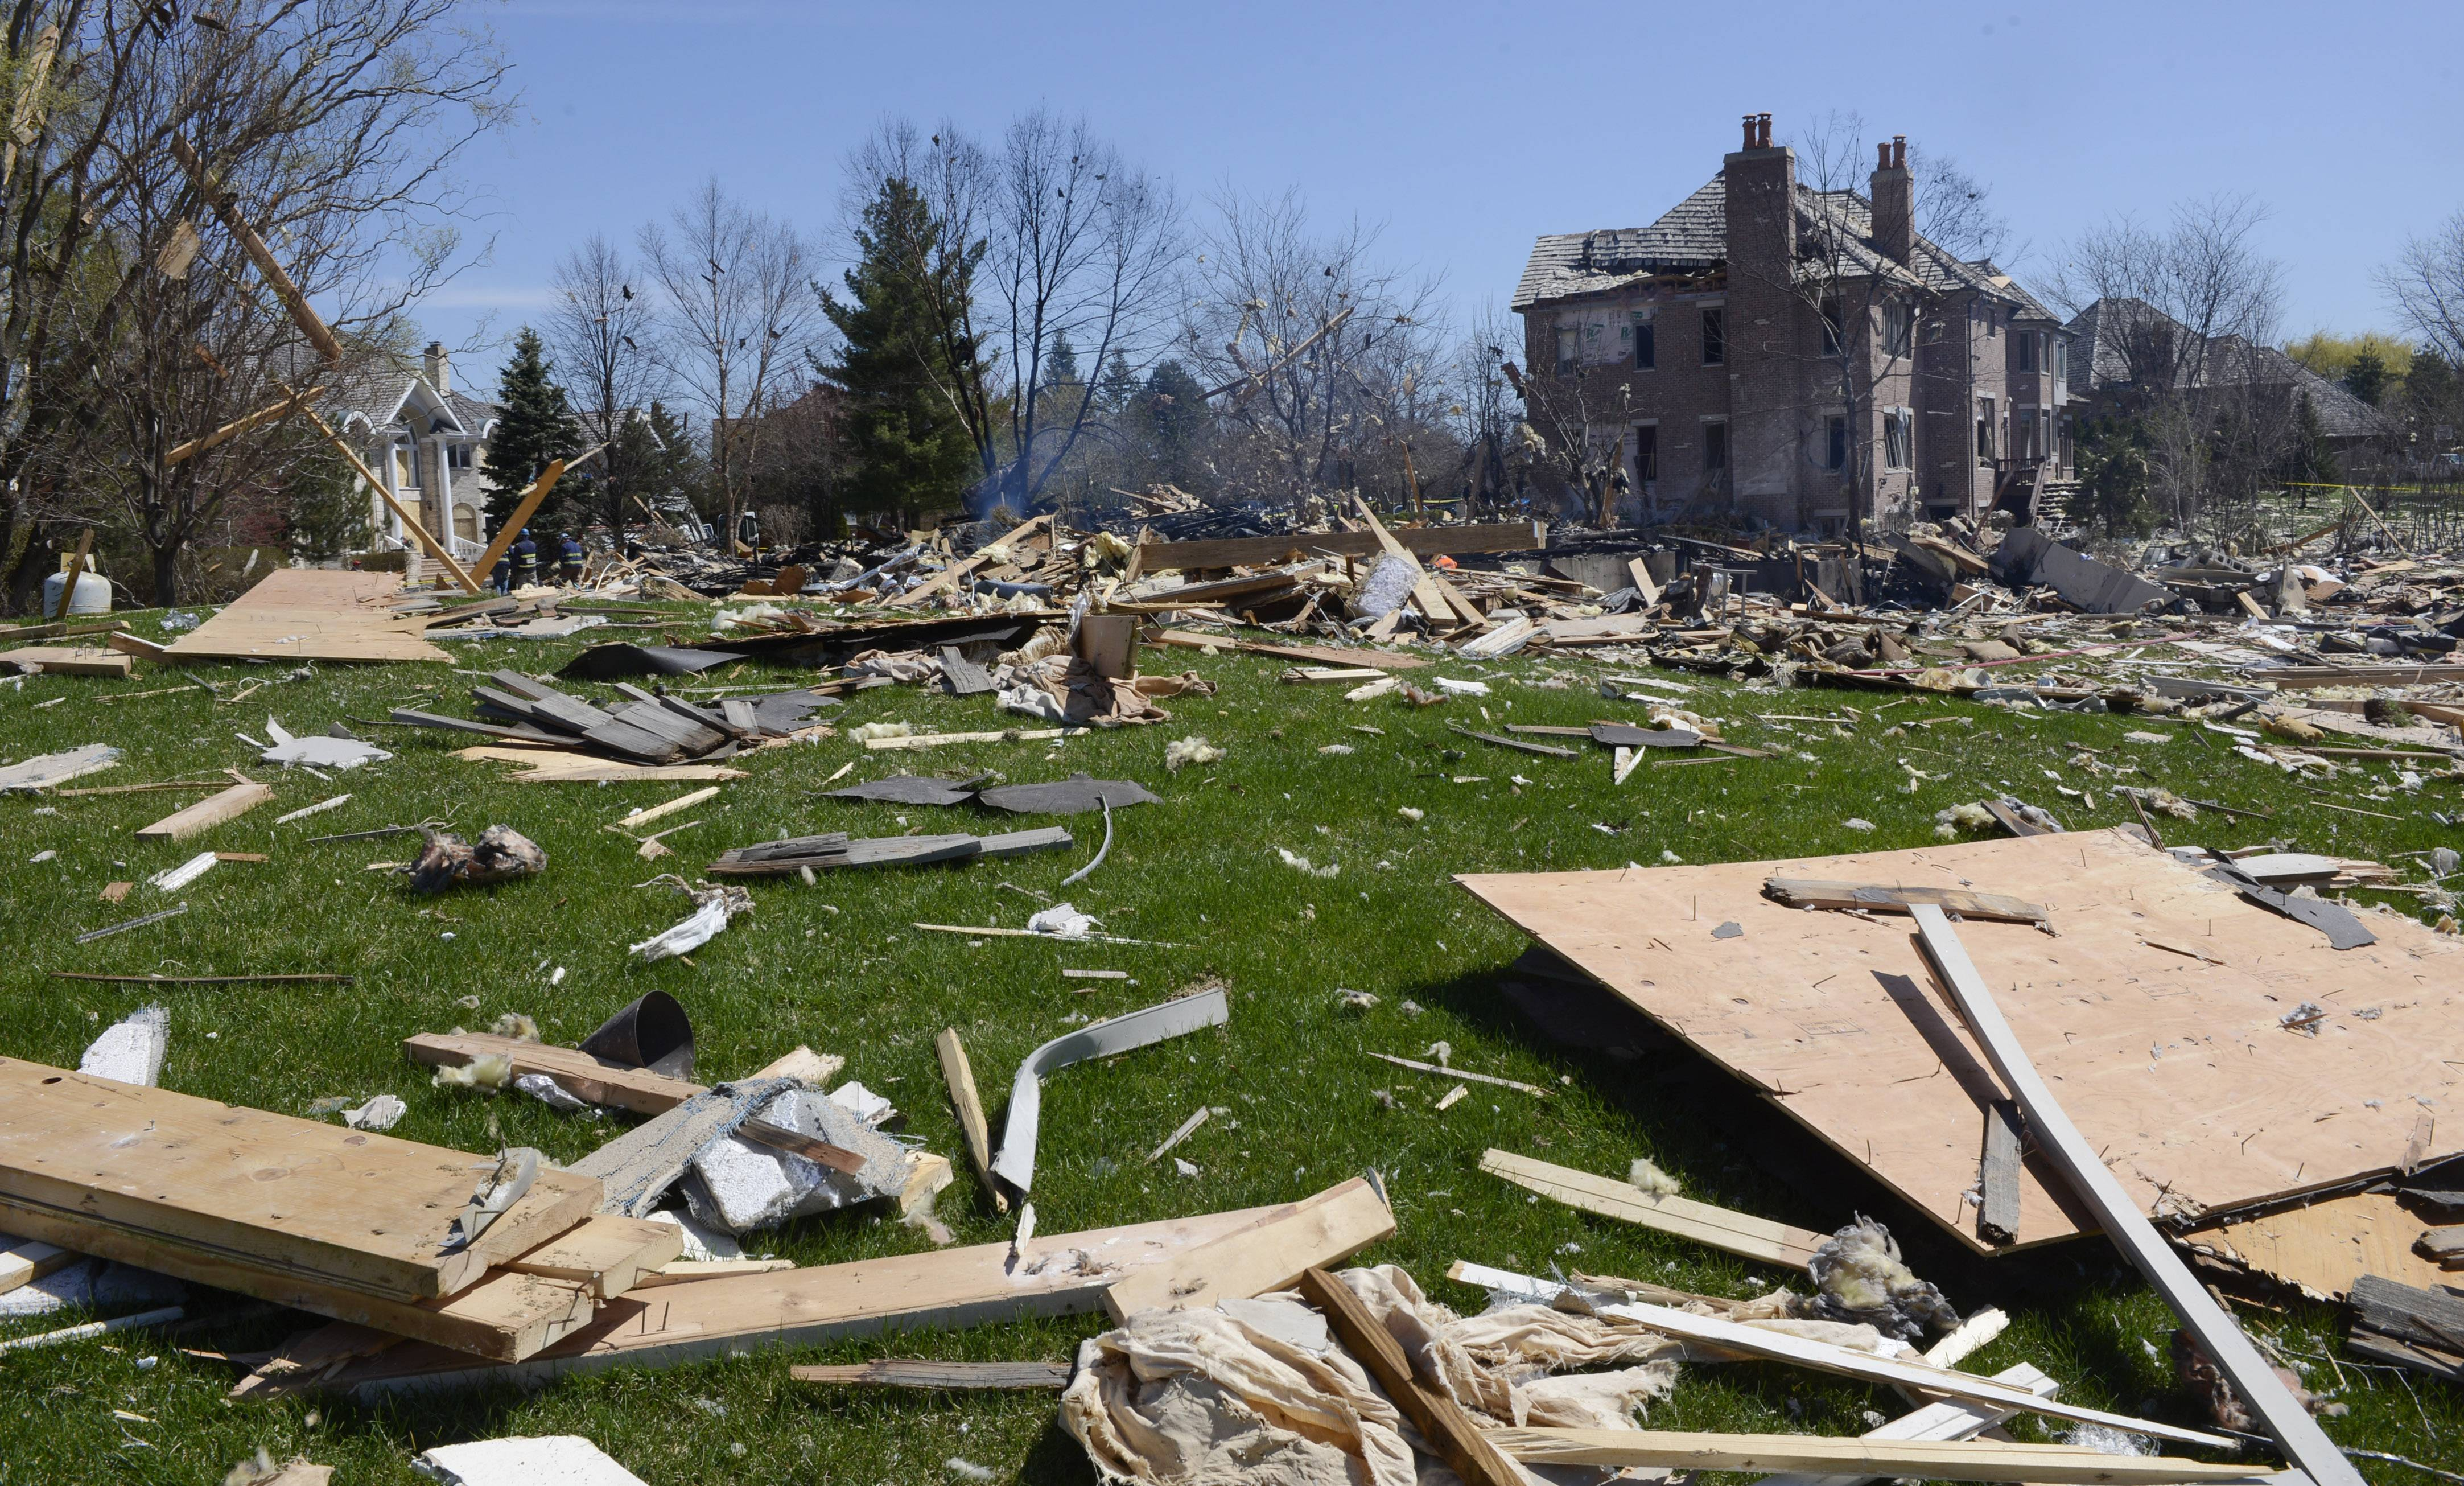 Images: The day after Long Grove house explosion